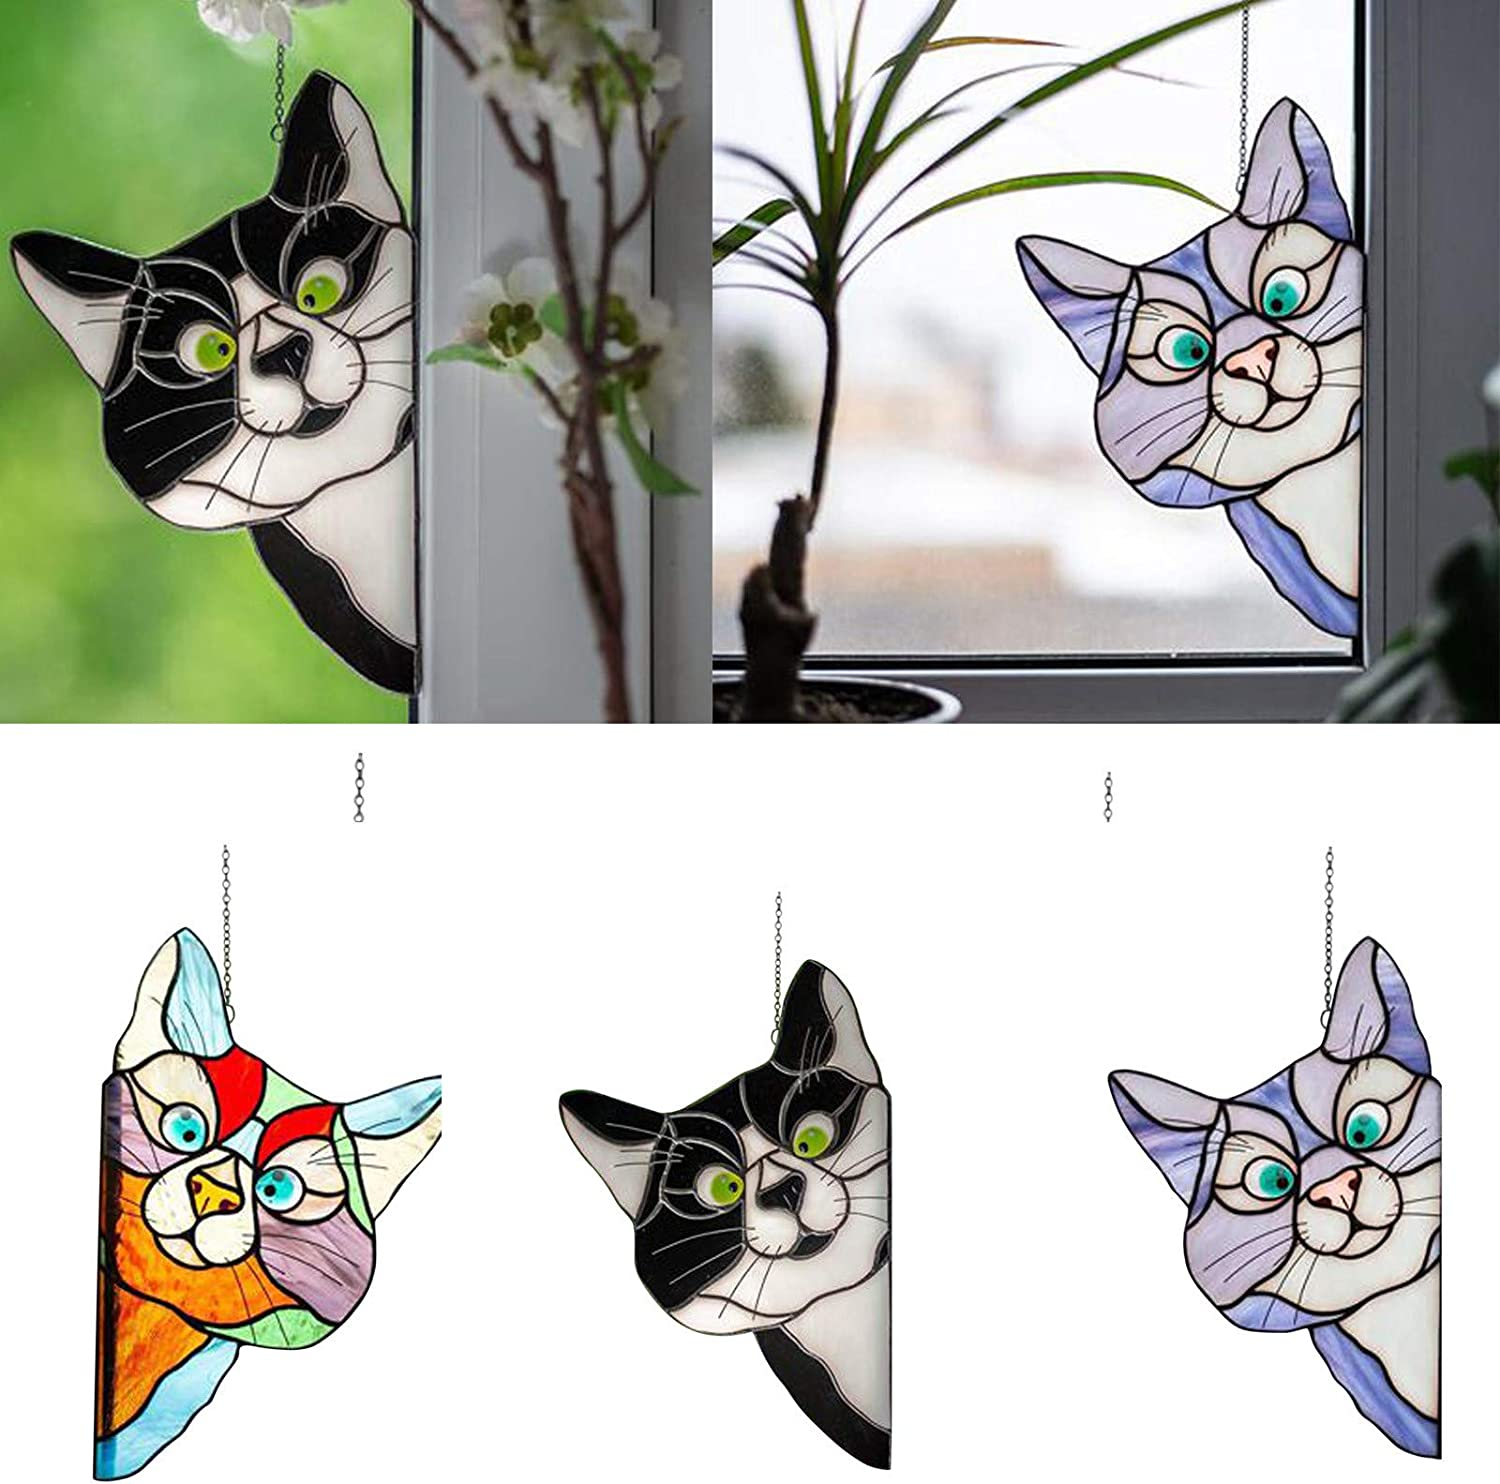 A LLQQ Stained Glass Window Hangings,Peeking Cat Stained Glass,Stained Glass Cat Window Hanger,Outdoor Hanging Decorations